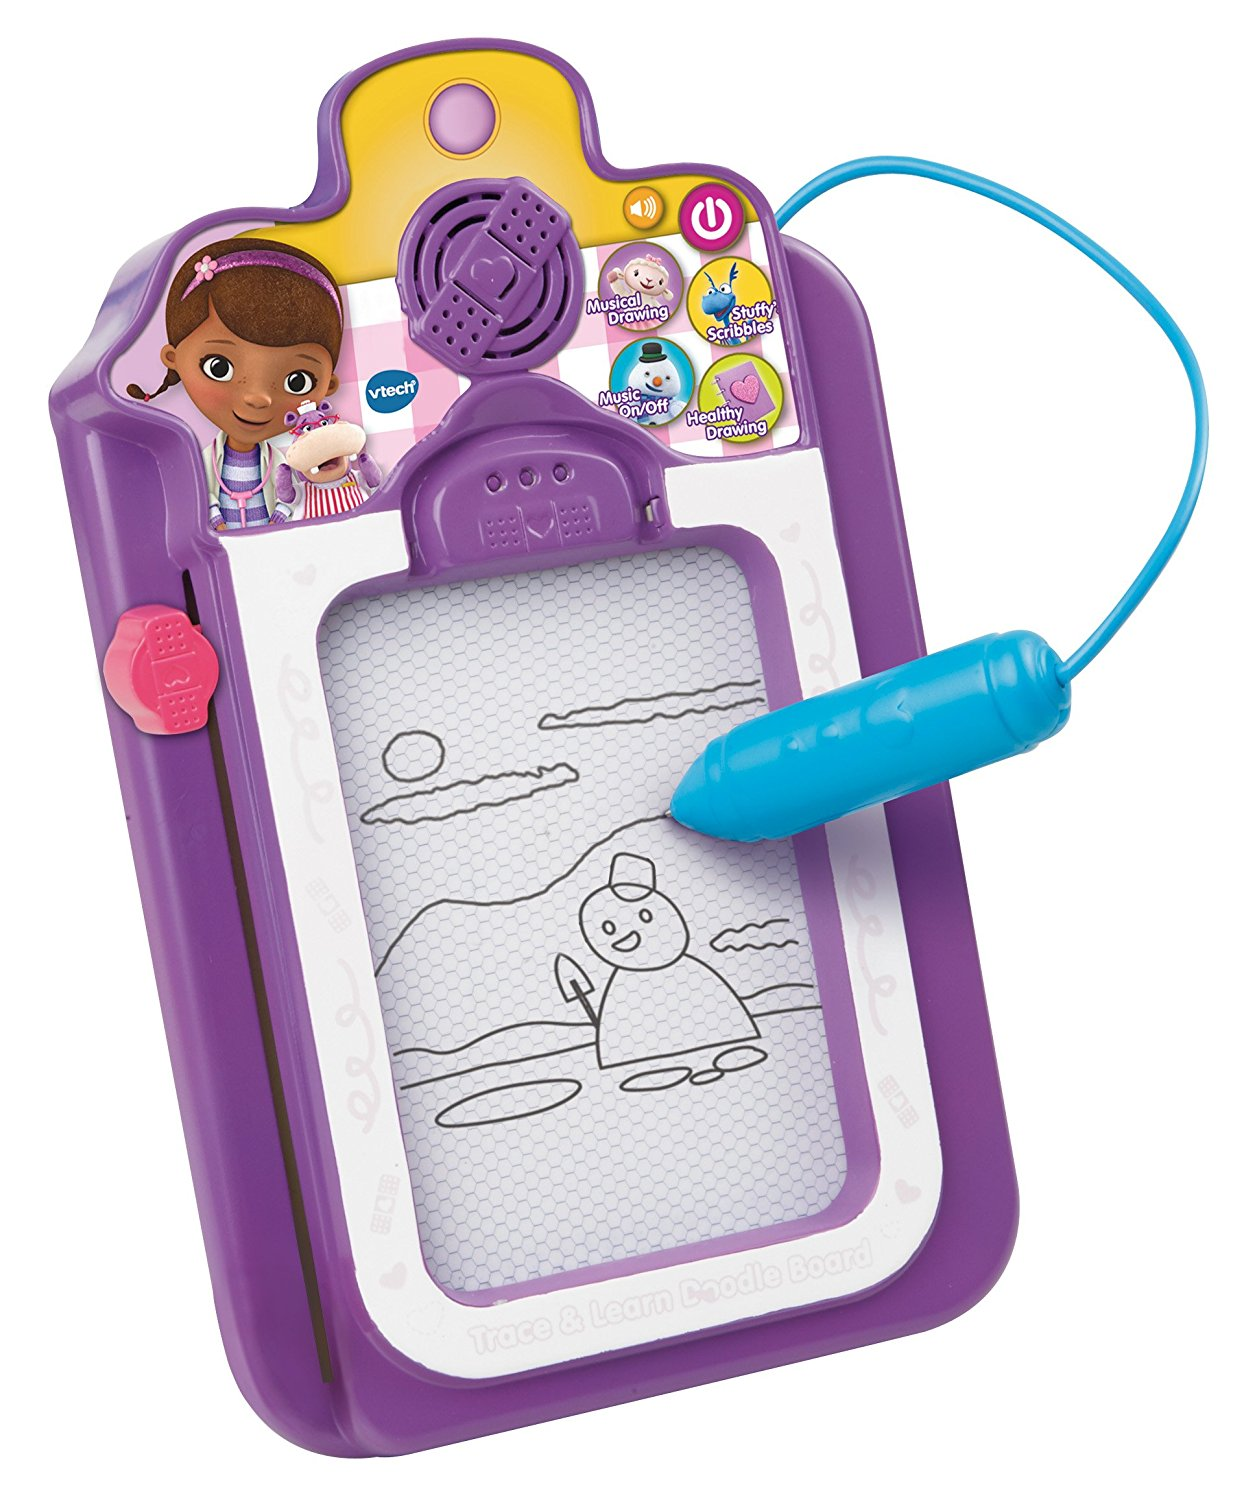 Doc McStuffins Talk and Trace Clipboard Toy, USA, Brand VTech by